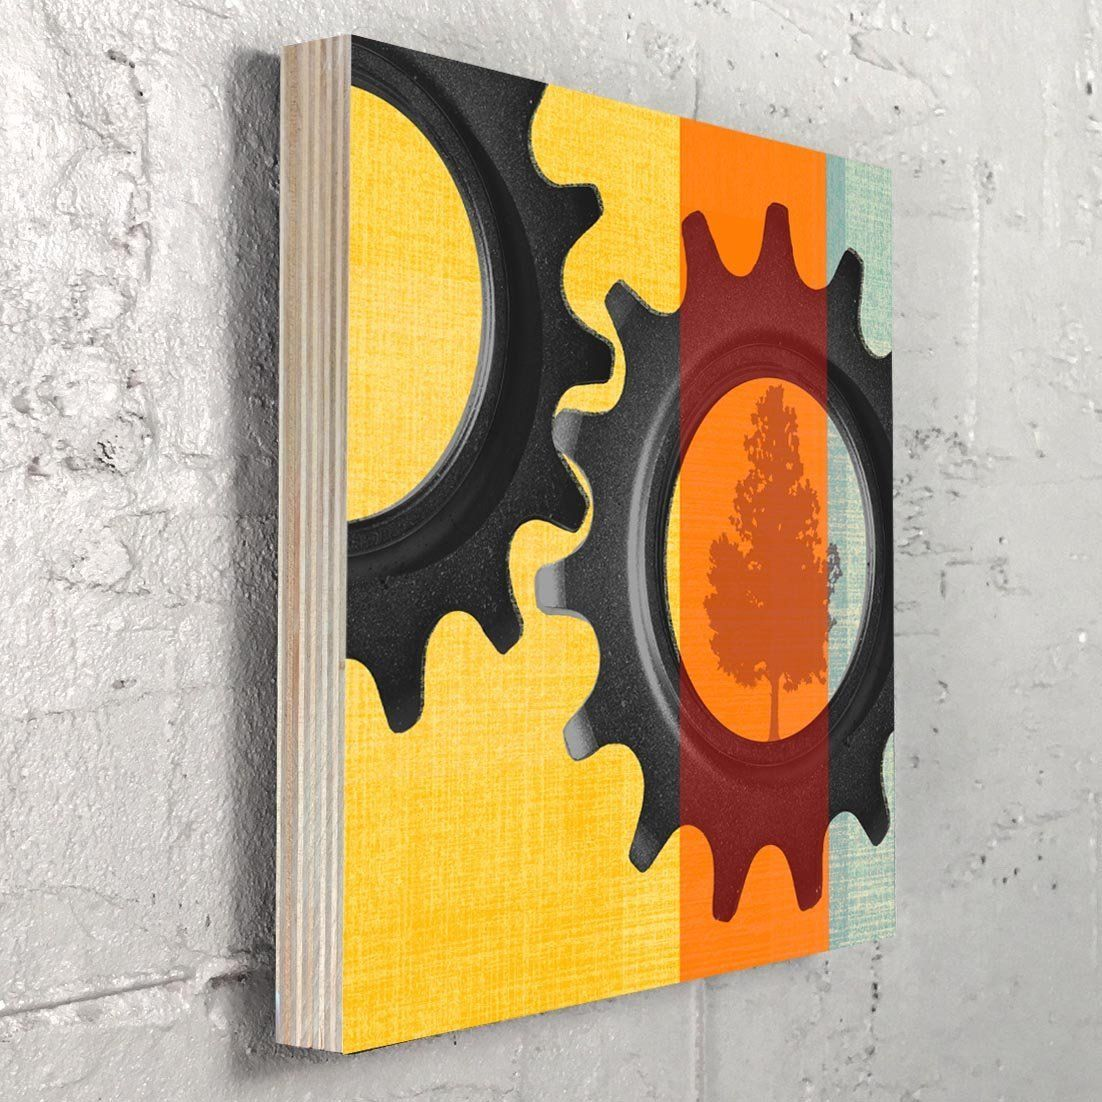 Bike Gear Wall Art On Birch Block. Gears - Is a graphic design and ...